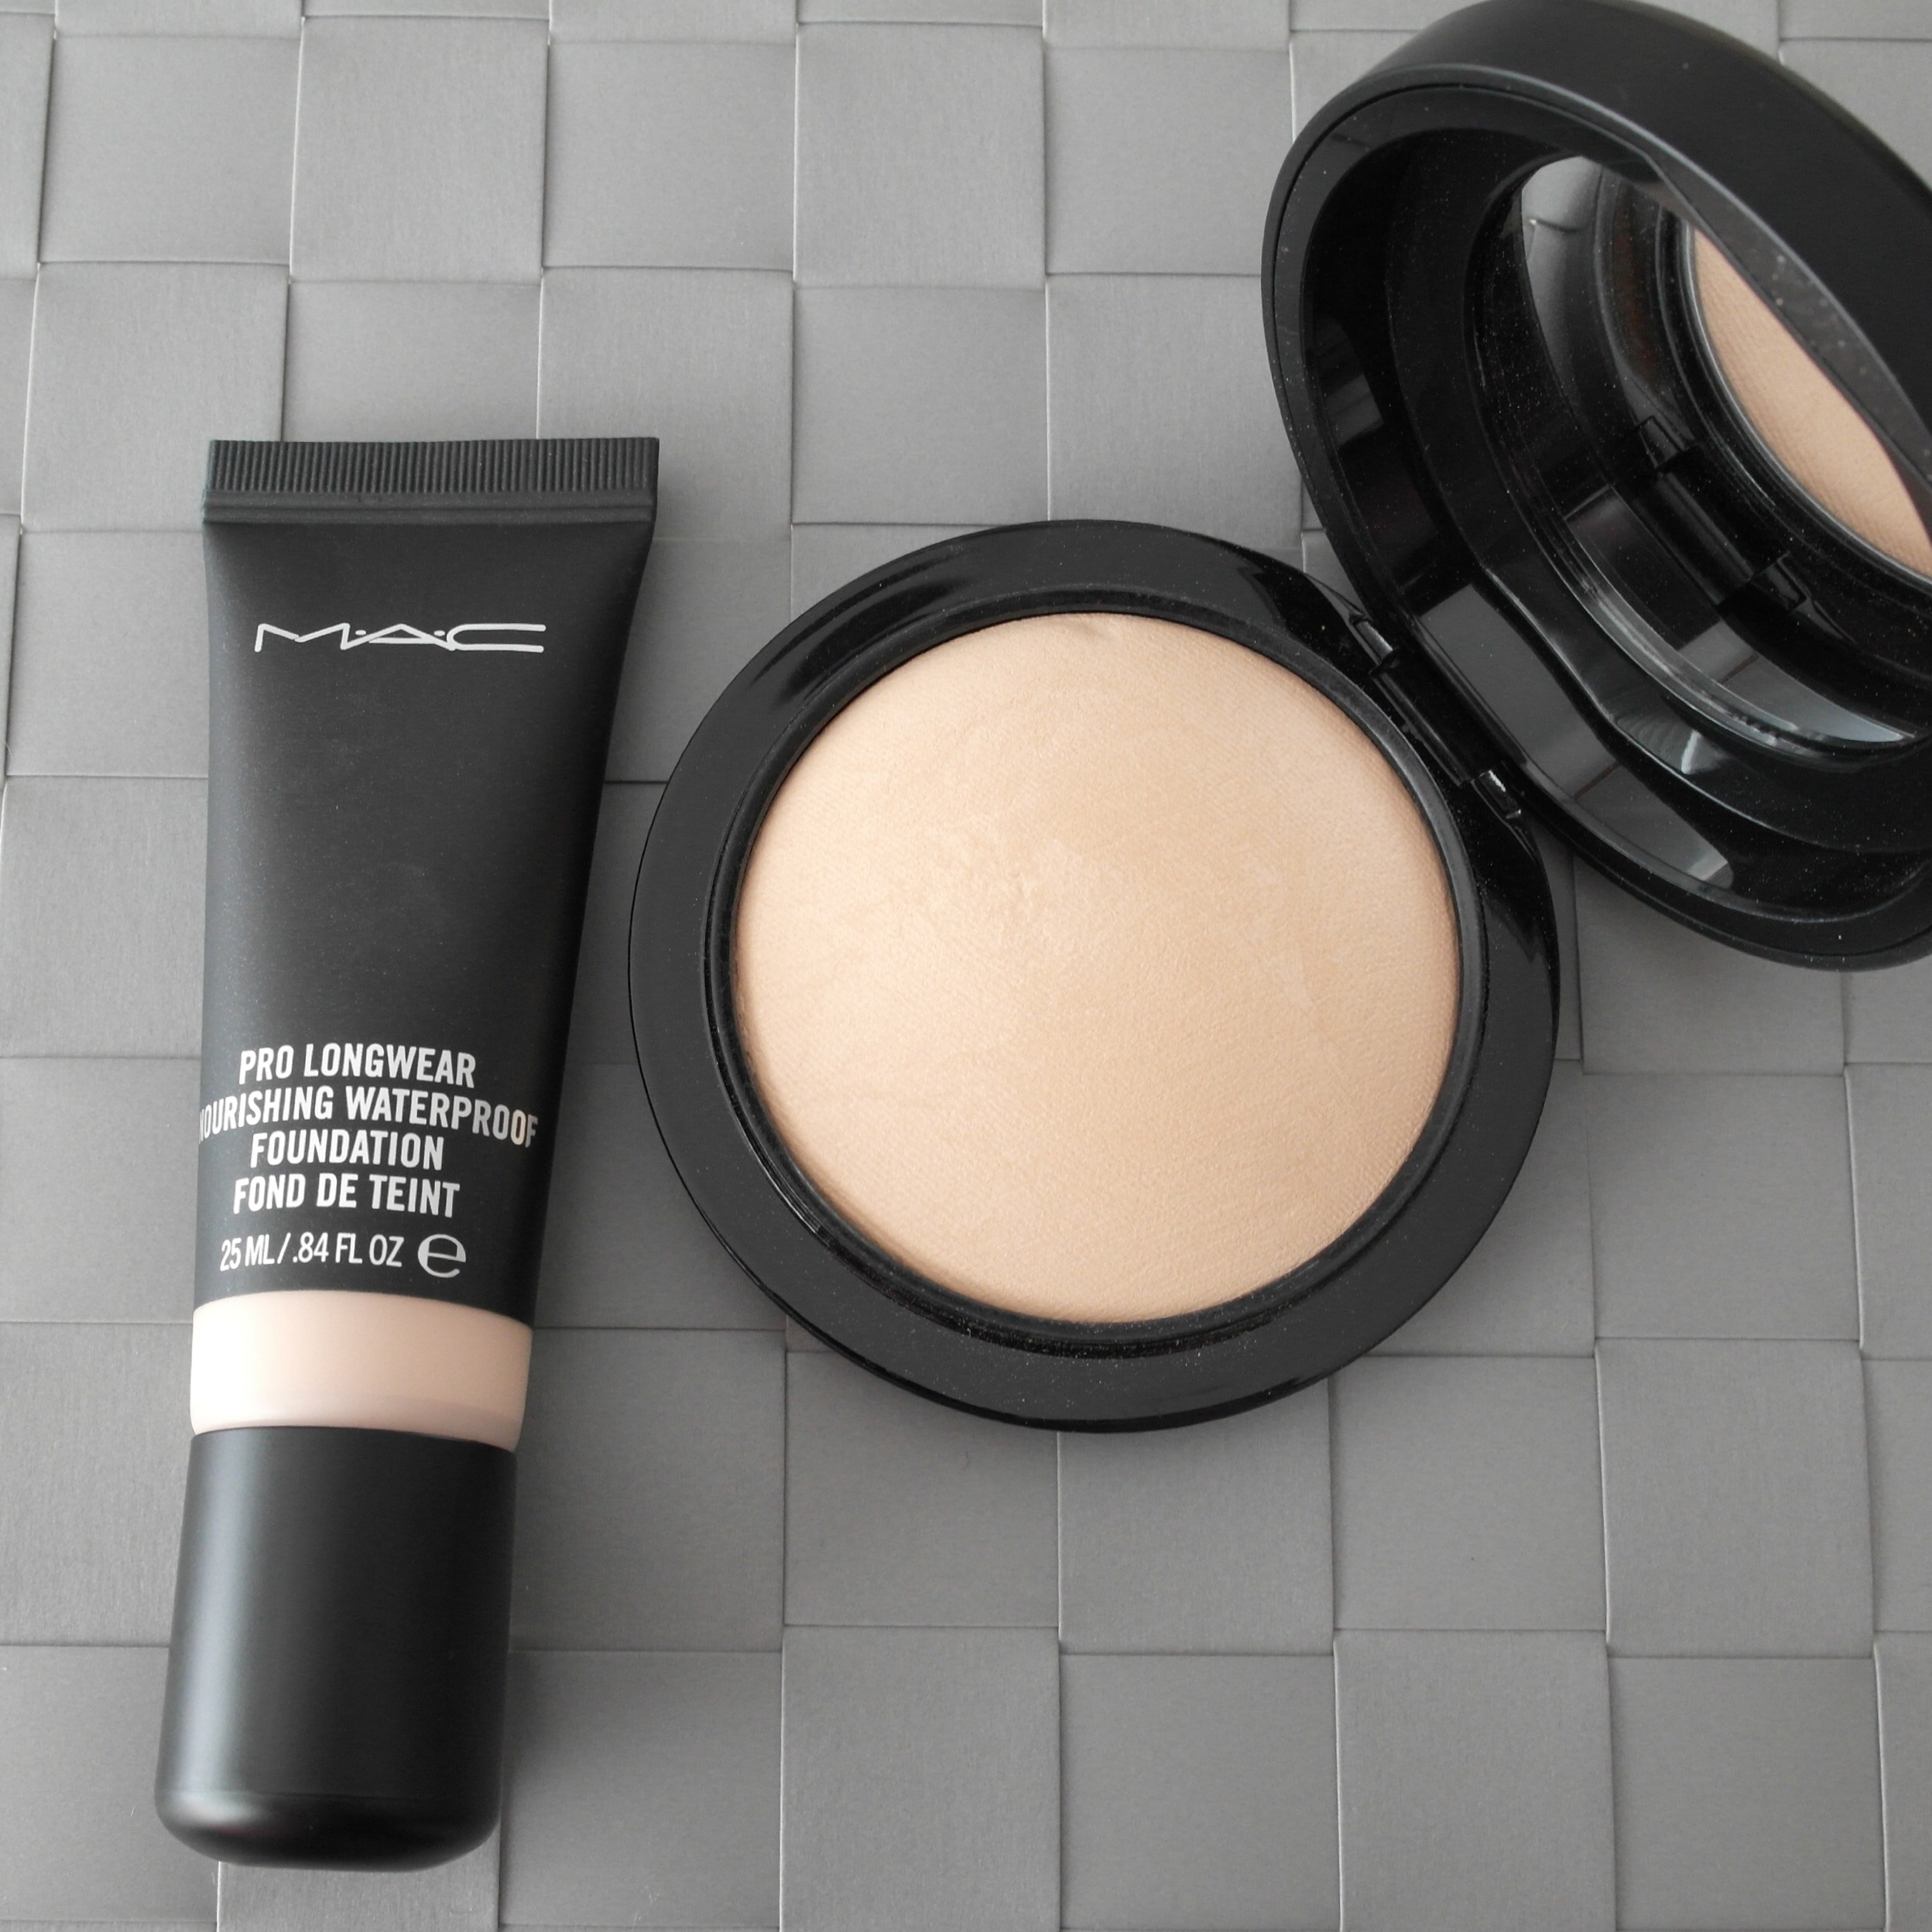 MAC Pro Longwear Nourishing Waterproof Foundation & MAC Mineralize Skinfinish Natural